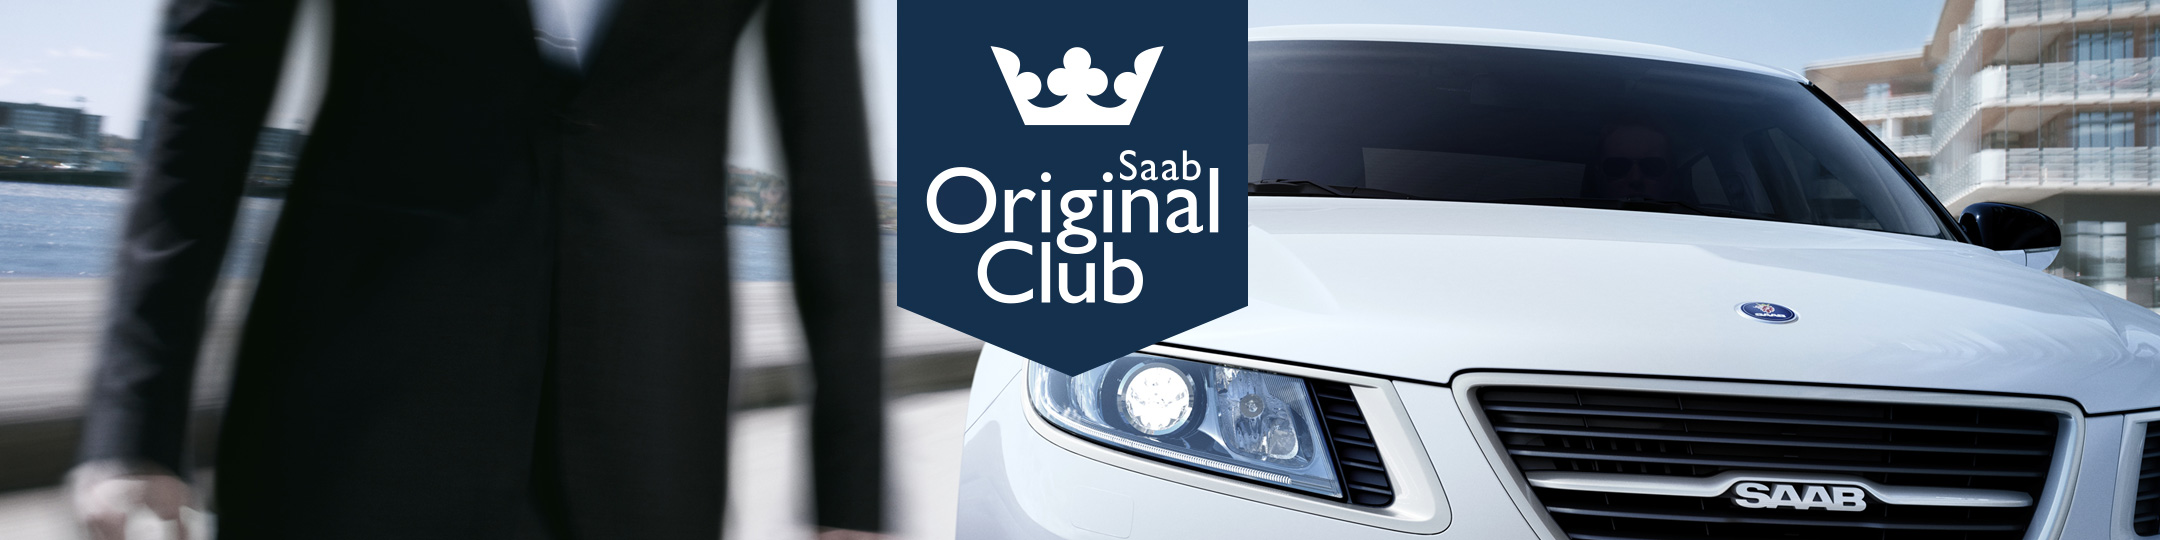 original saab club